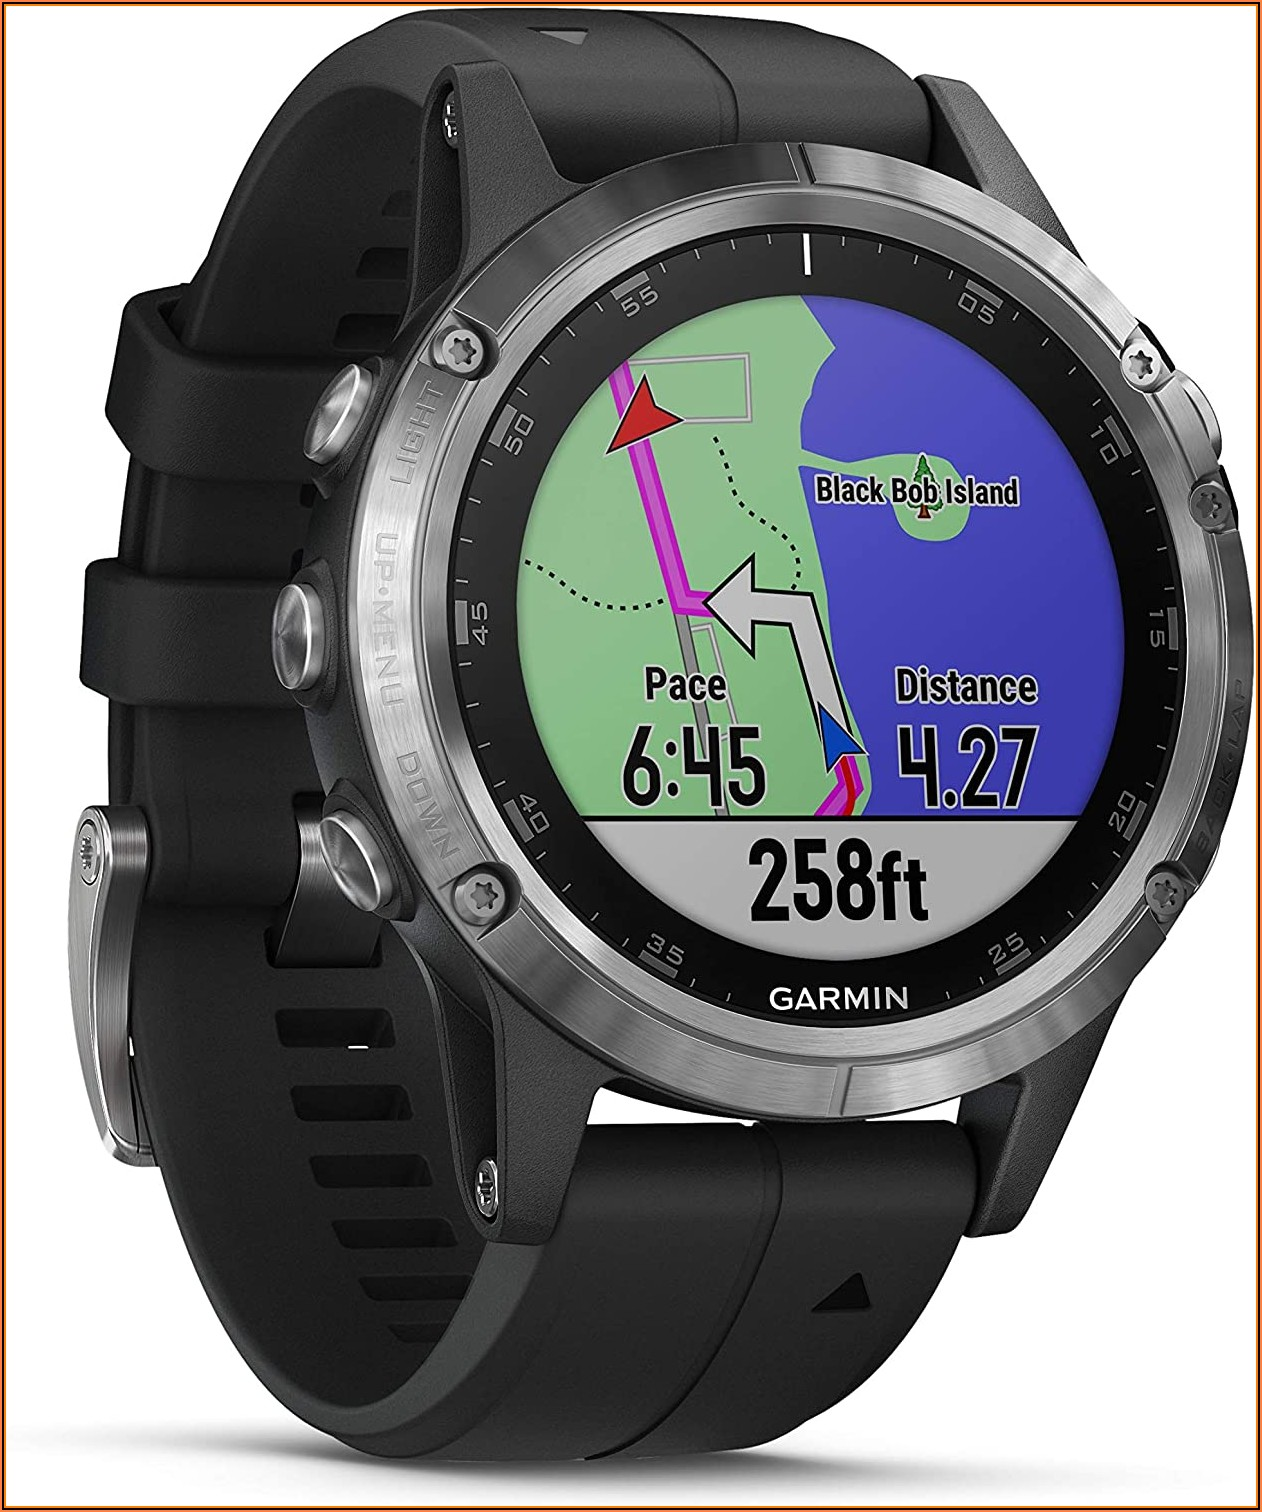 Best Gps Watch With Topo Maps